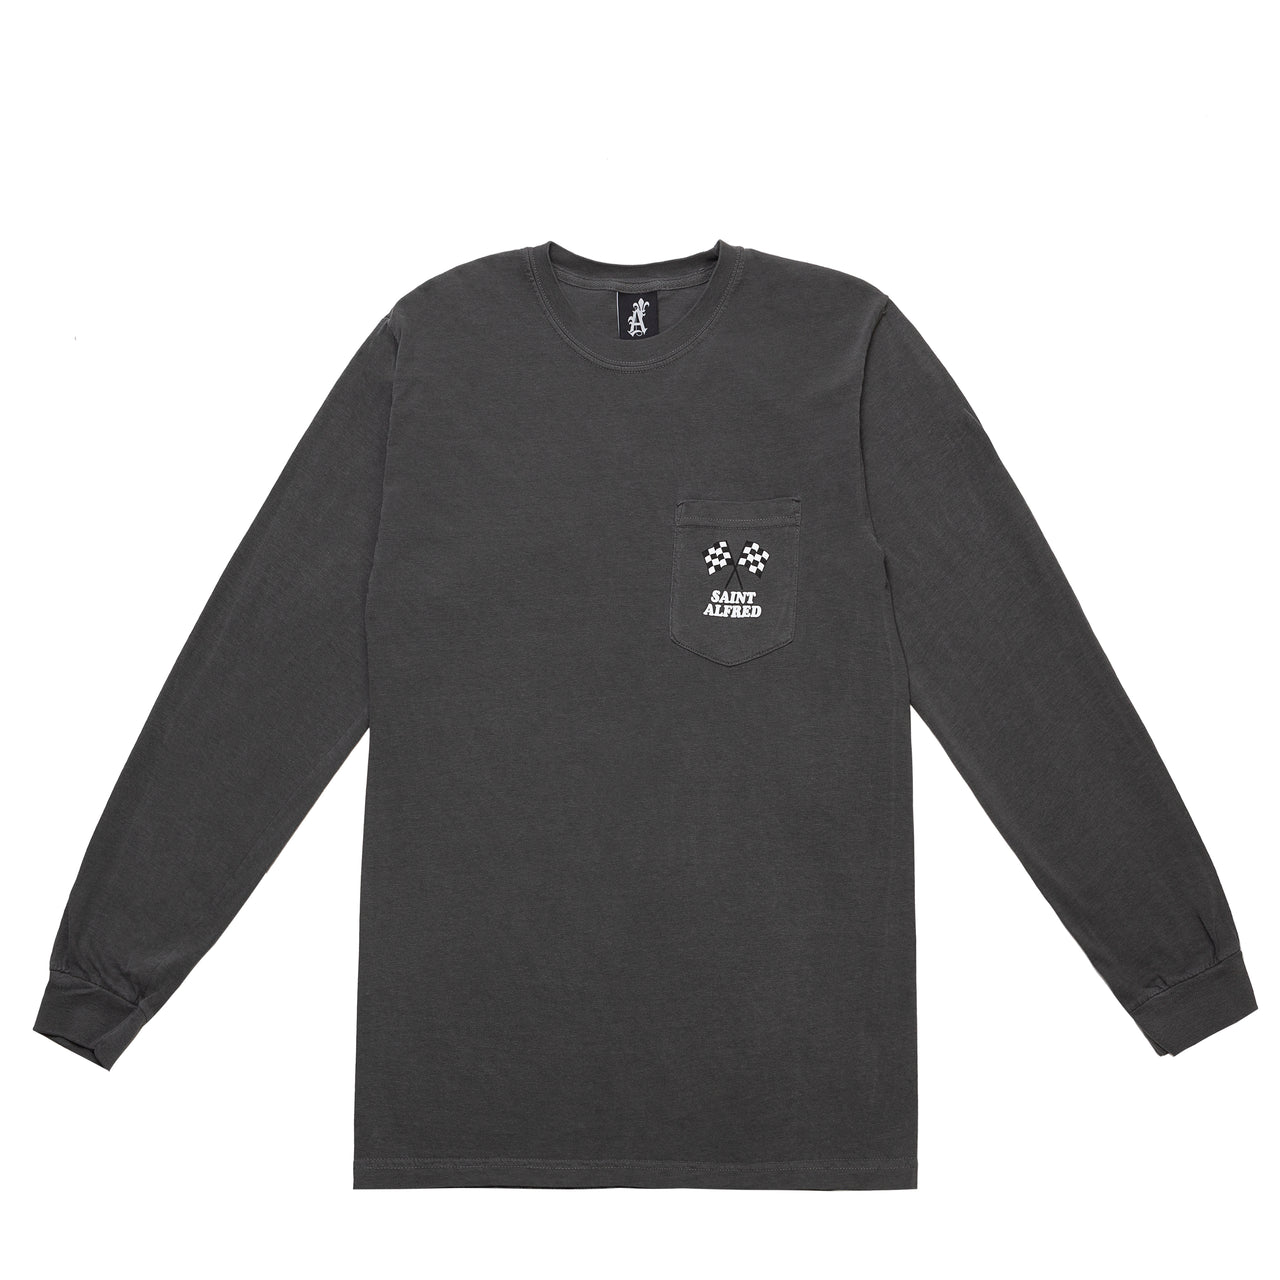 RACEWAY LONG SLEEVE POCKET TEE SU20